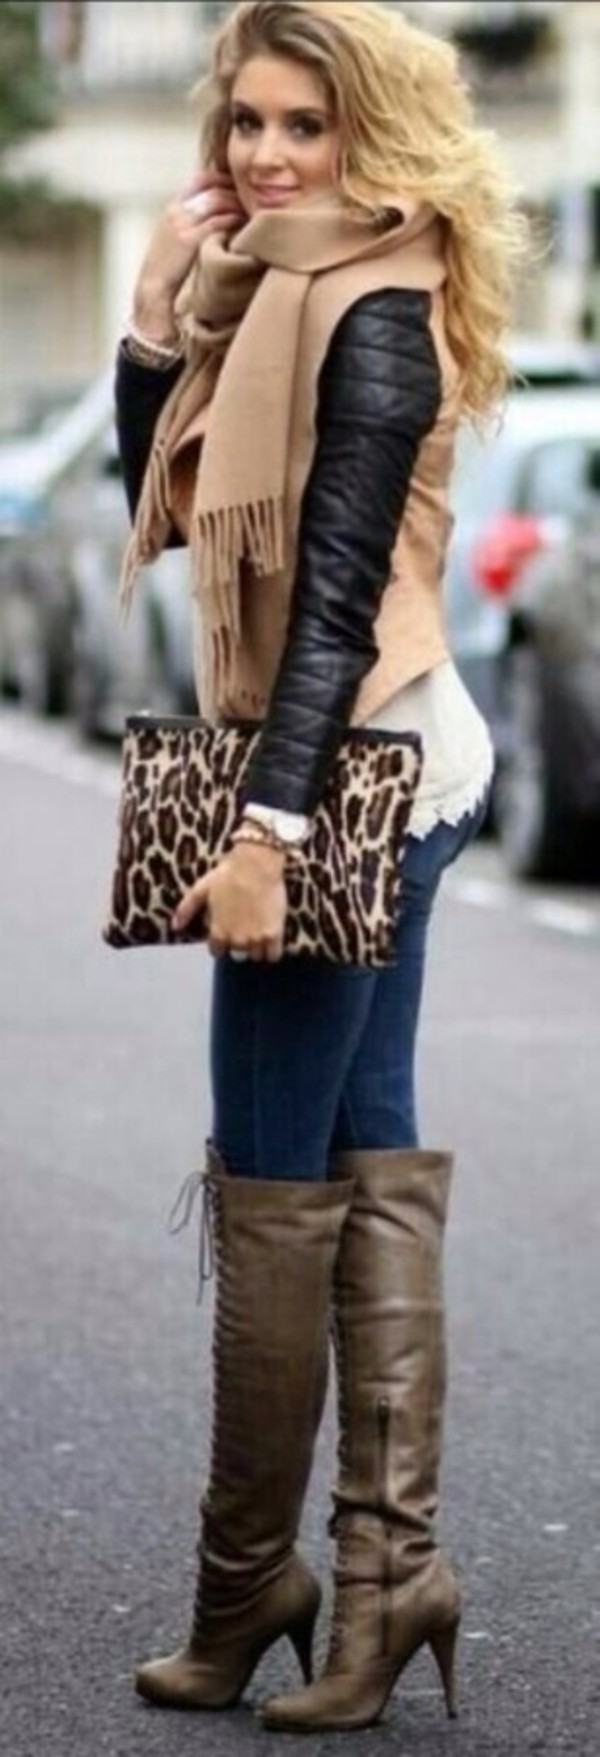 jacket biker jacket fringe scarf leather jacket lace jeans leopard print clutch overknee boots lace up boots scarf bag shorts shoes